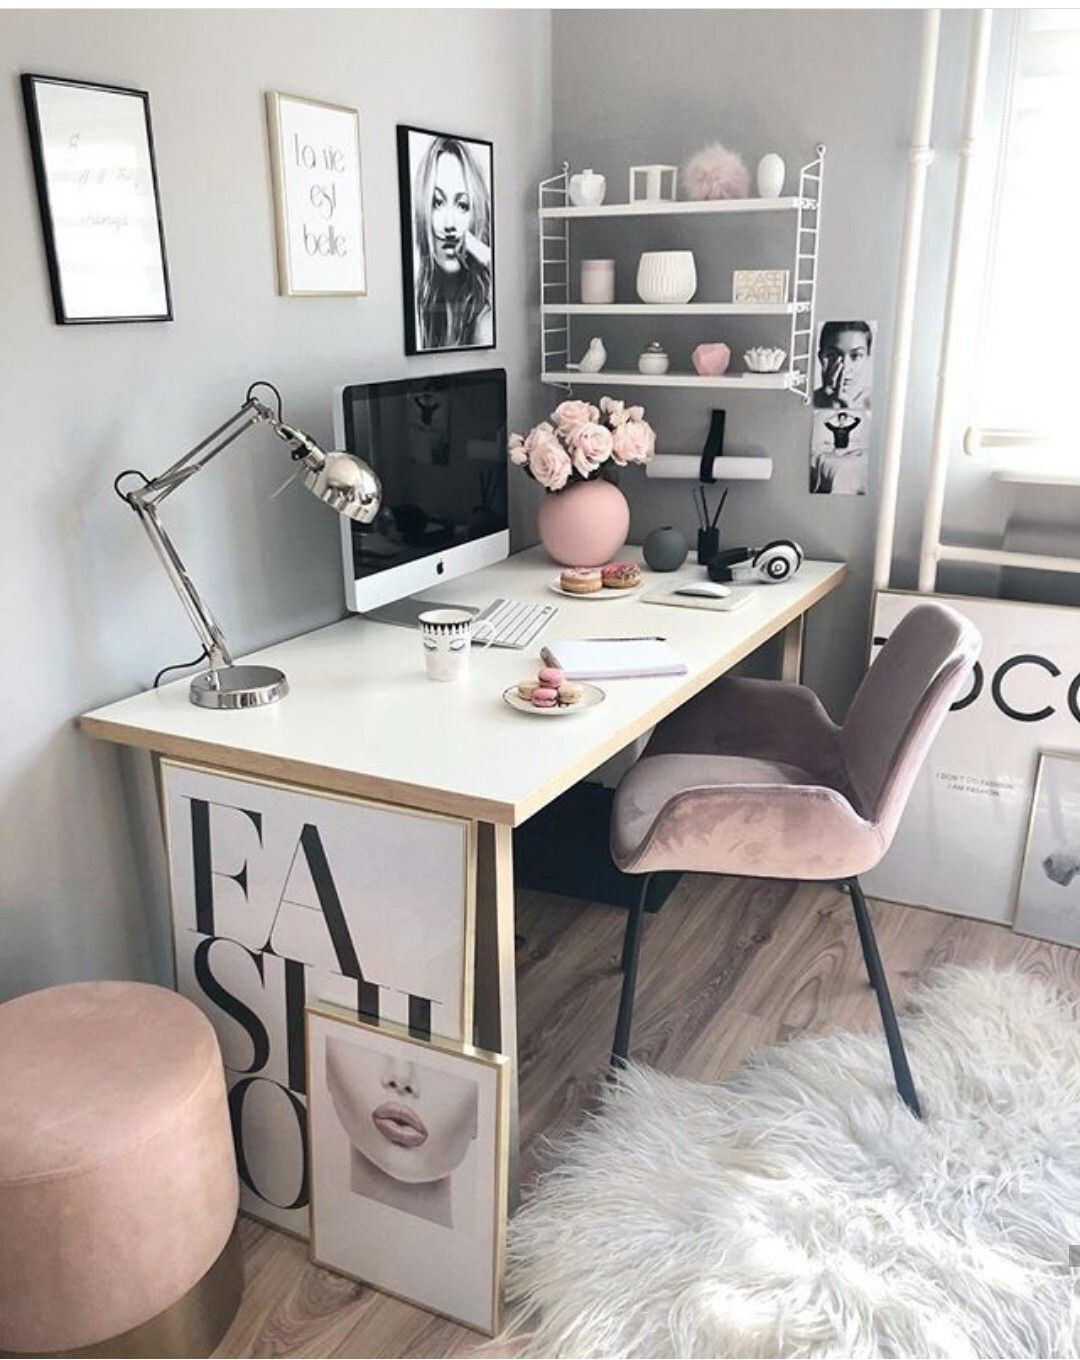 Pin By Fancynchic Fashion Lifesty On Decoracao Para Quartos Home Office Decor Home Office Design Feminine Home Offices